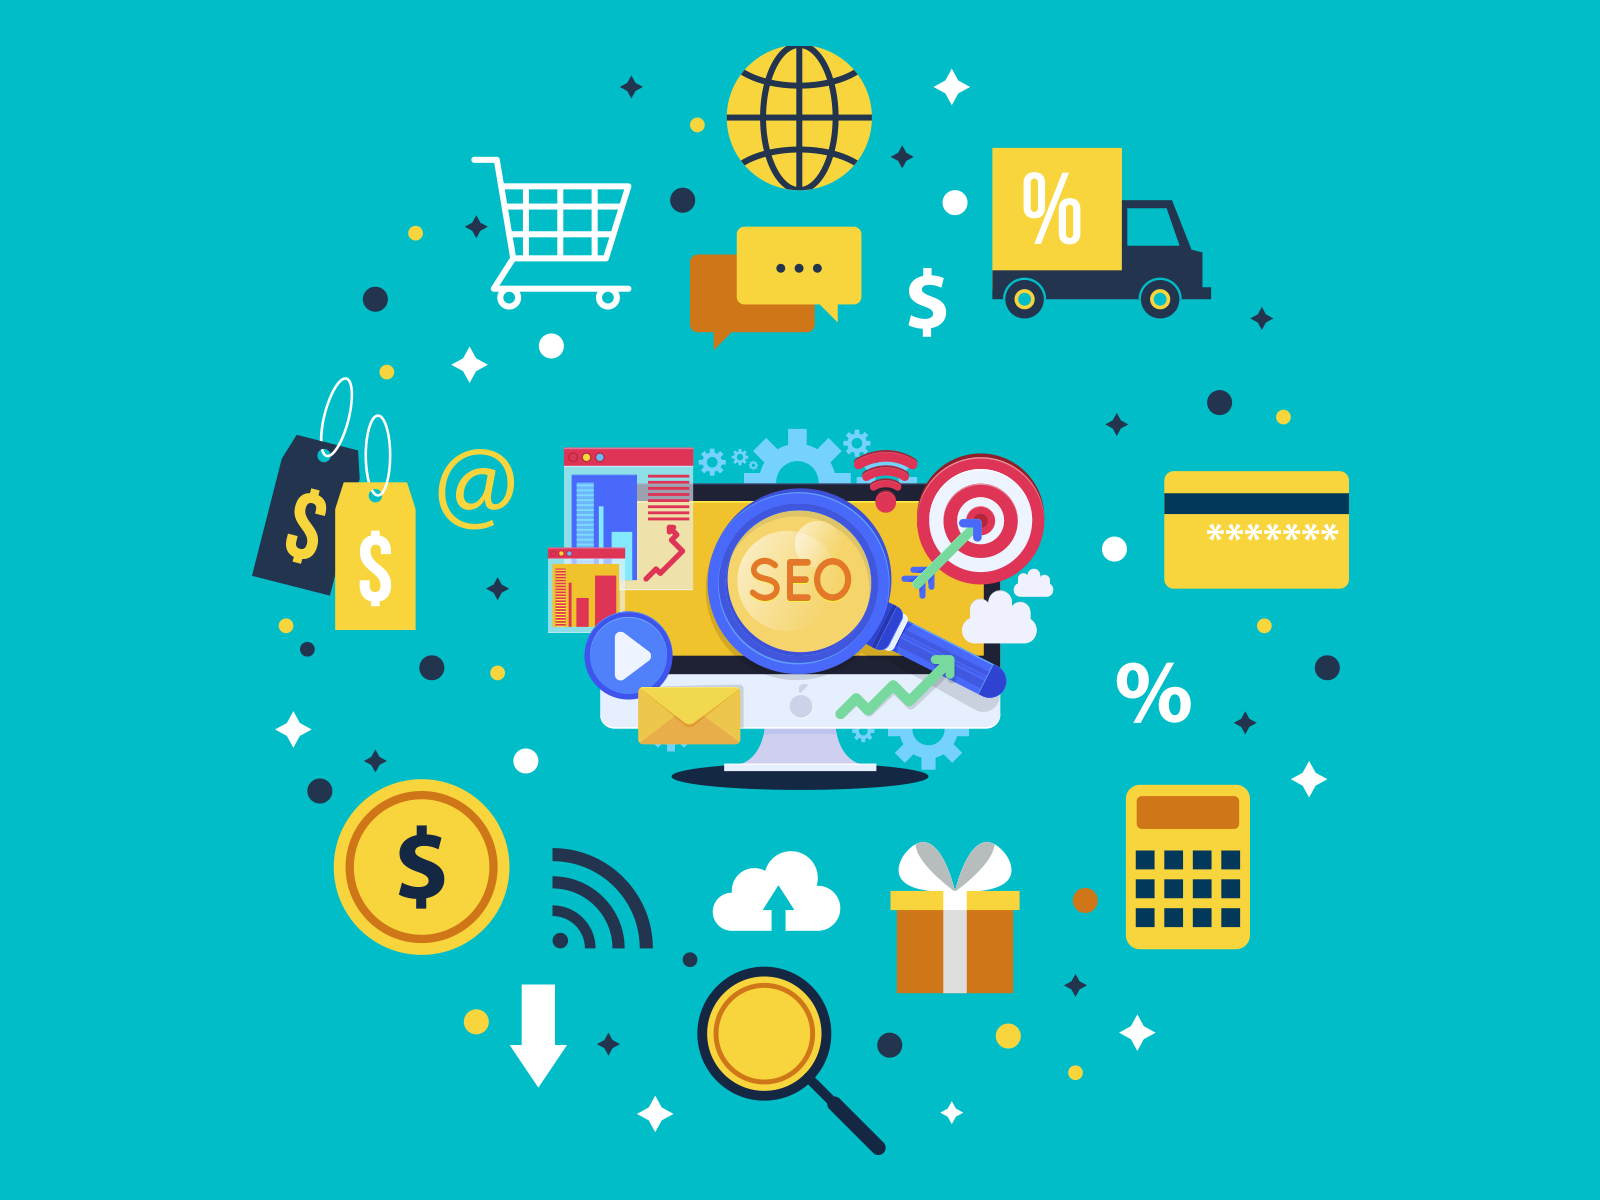 Why choose Digital Terai for E-Commerce SEO Services?